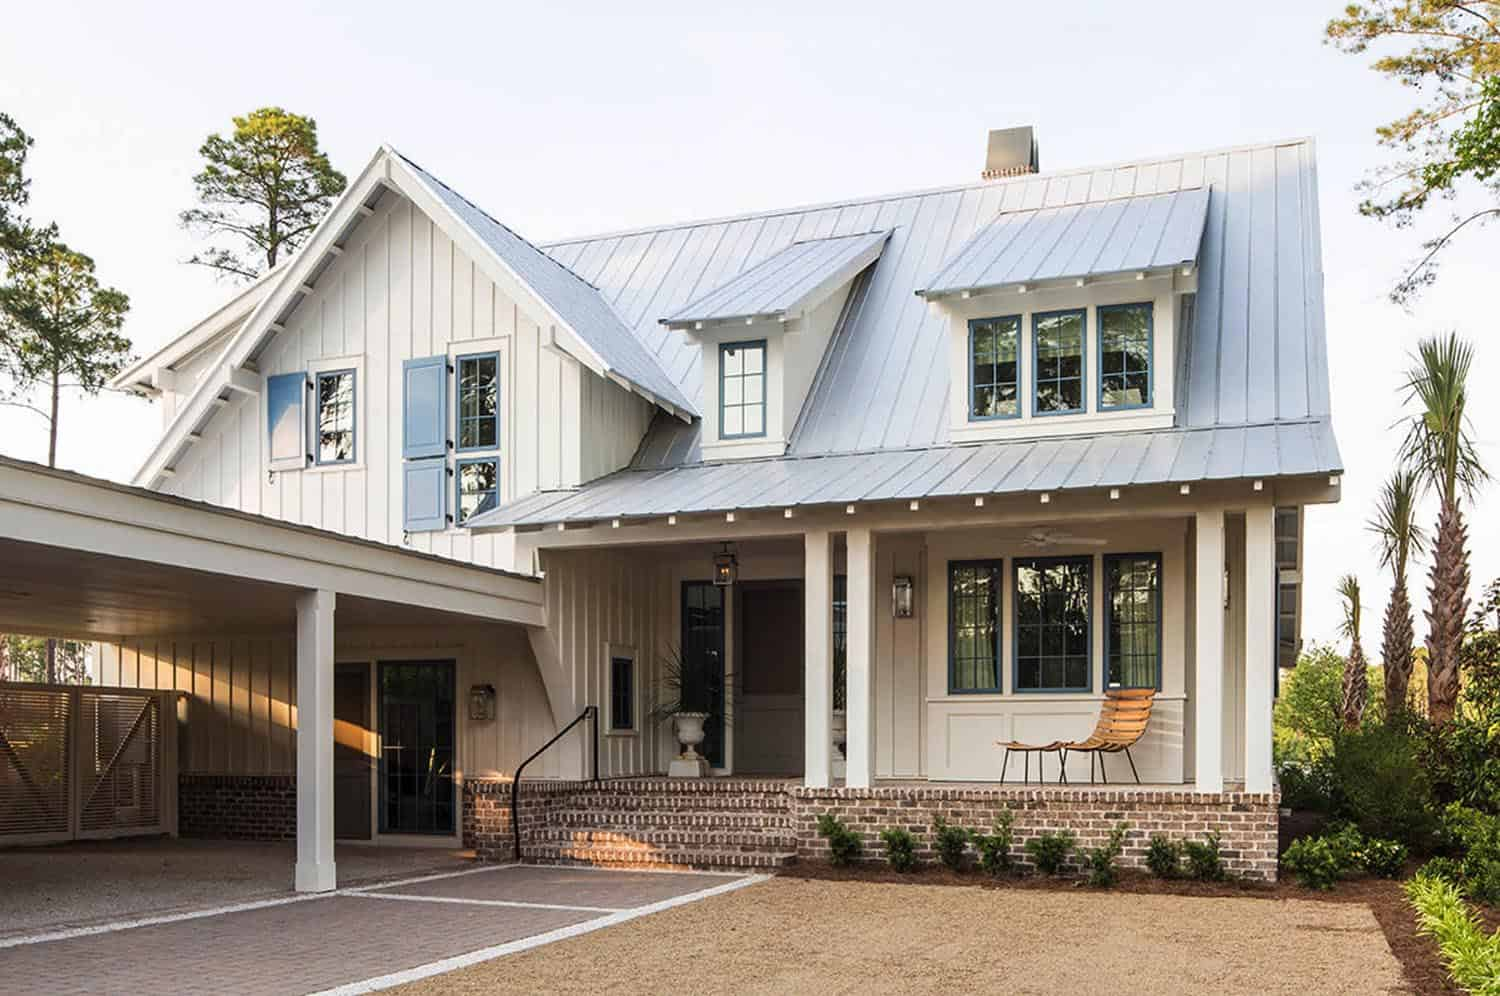 Tour a cozy beach style home with ultra-inspiring details in South Carolina